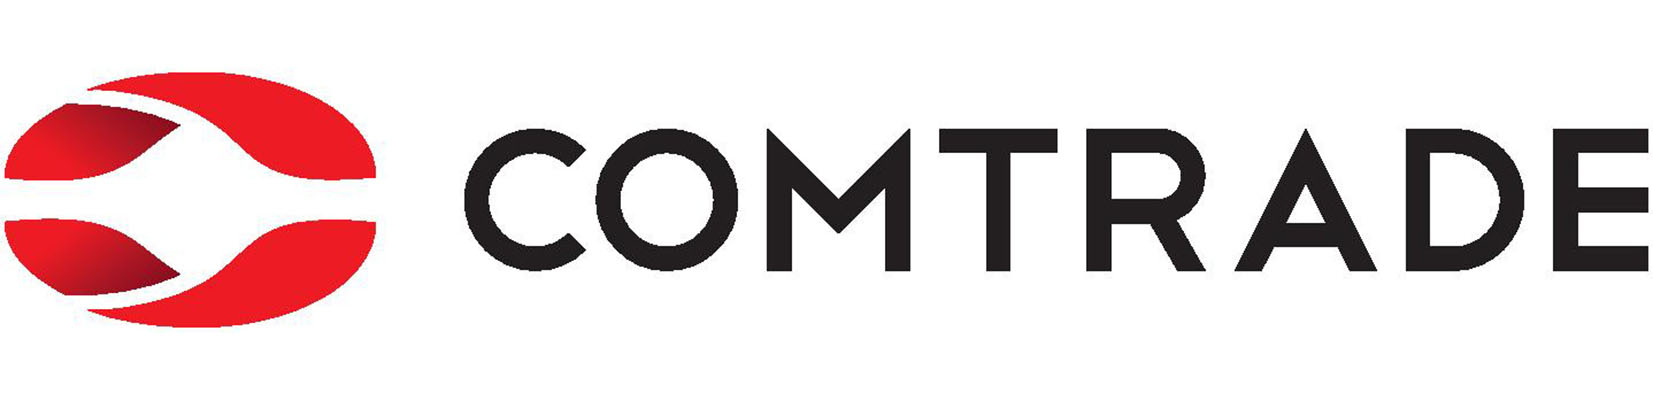 http://www.3kproduction.rs/wp-content/uploads/2017/09/comtrade_logo.jpg